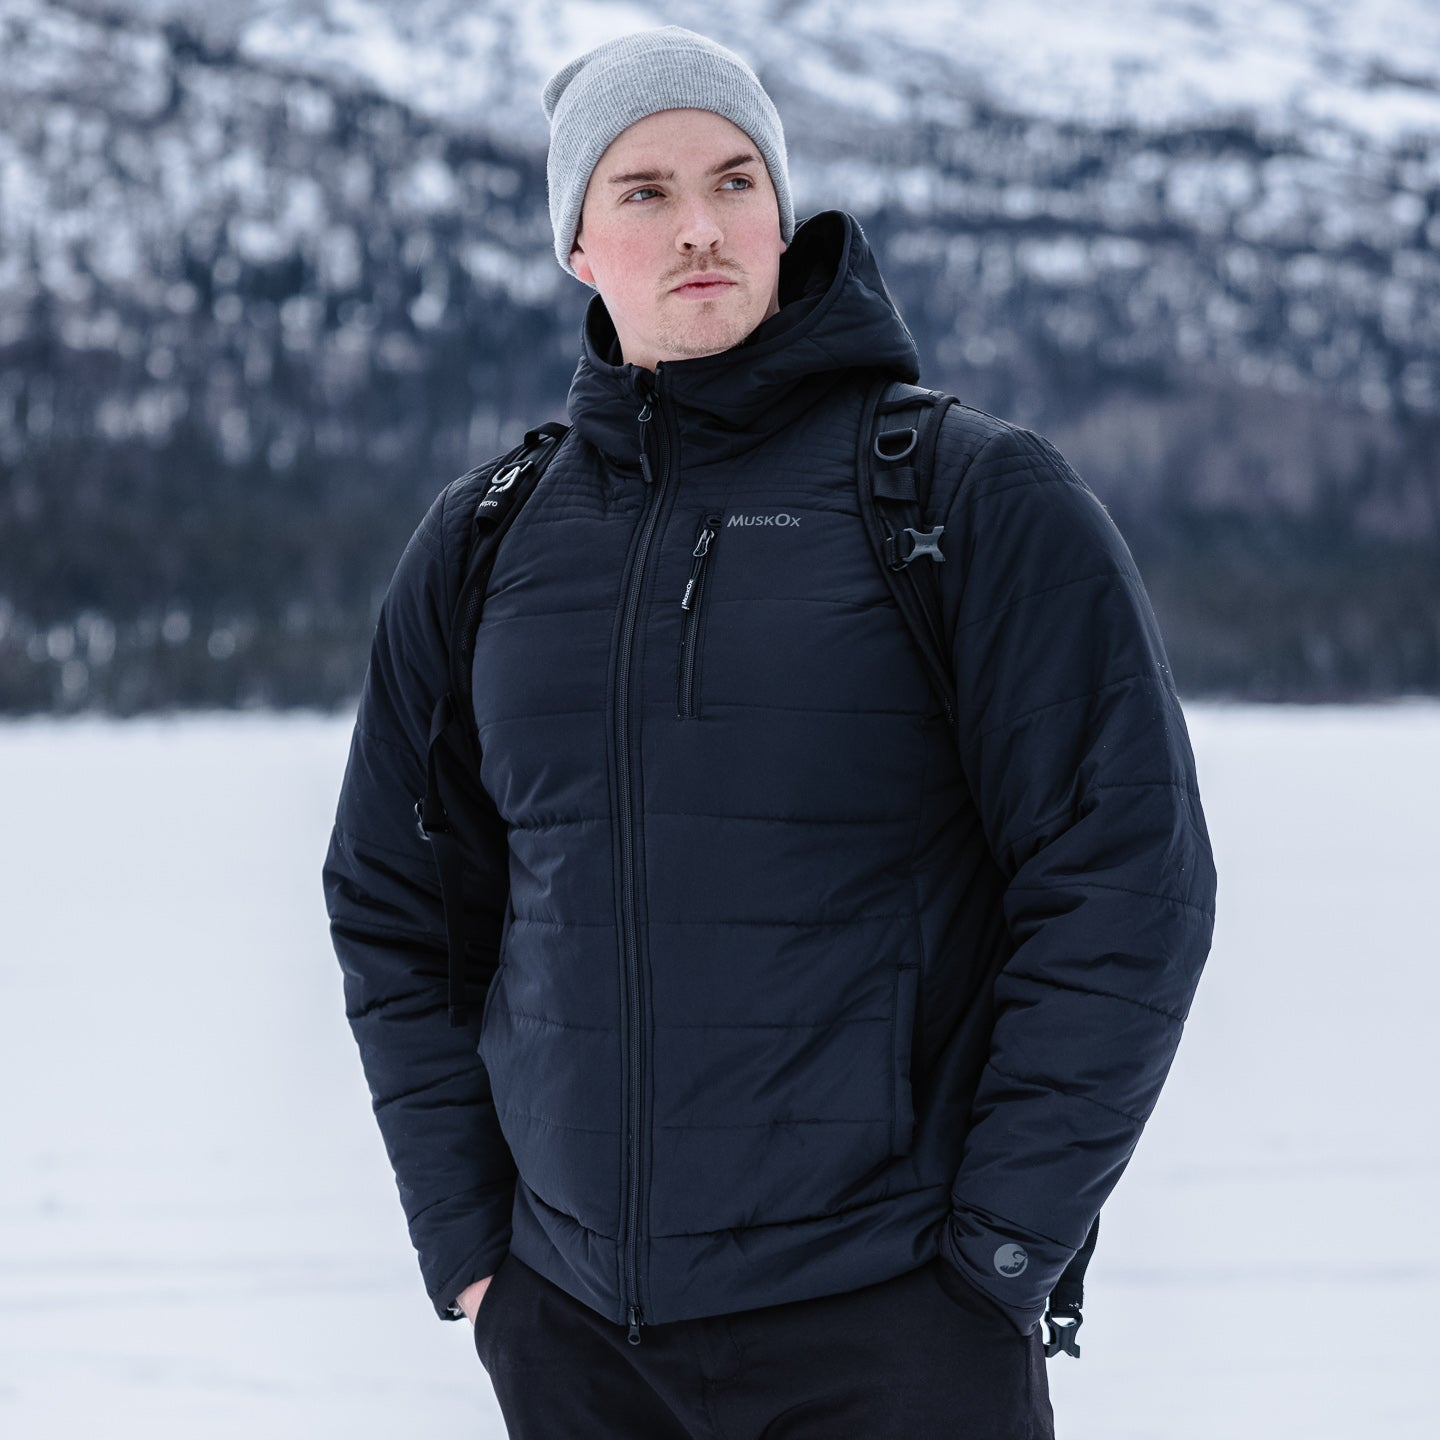 Photo taken by NickByNorthwest. MuskOx Insulated Wrangell Puffer Jacket. Performance Men's Outerwear by MuskOx Men's Outdoor Apparel. Lab Certified Insulated Jacket to keep you warm in negative conditions.